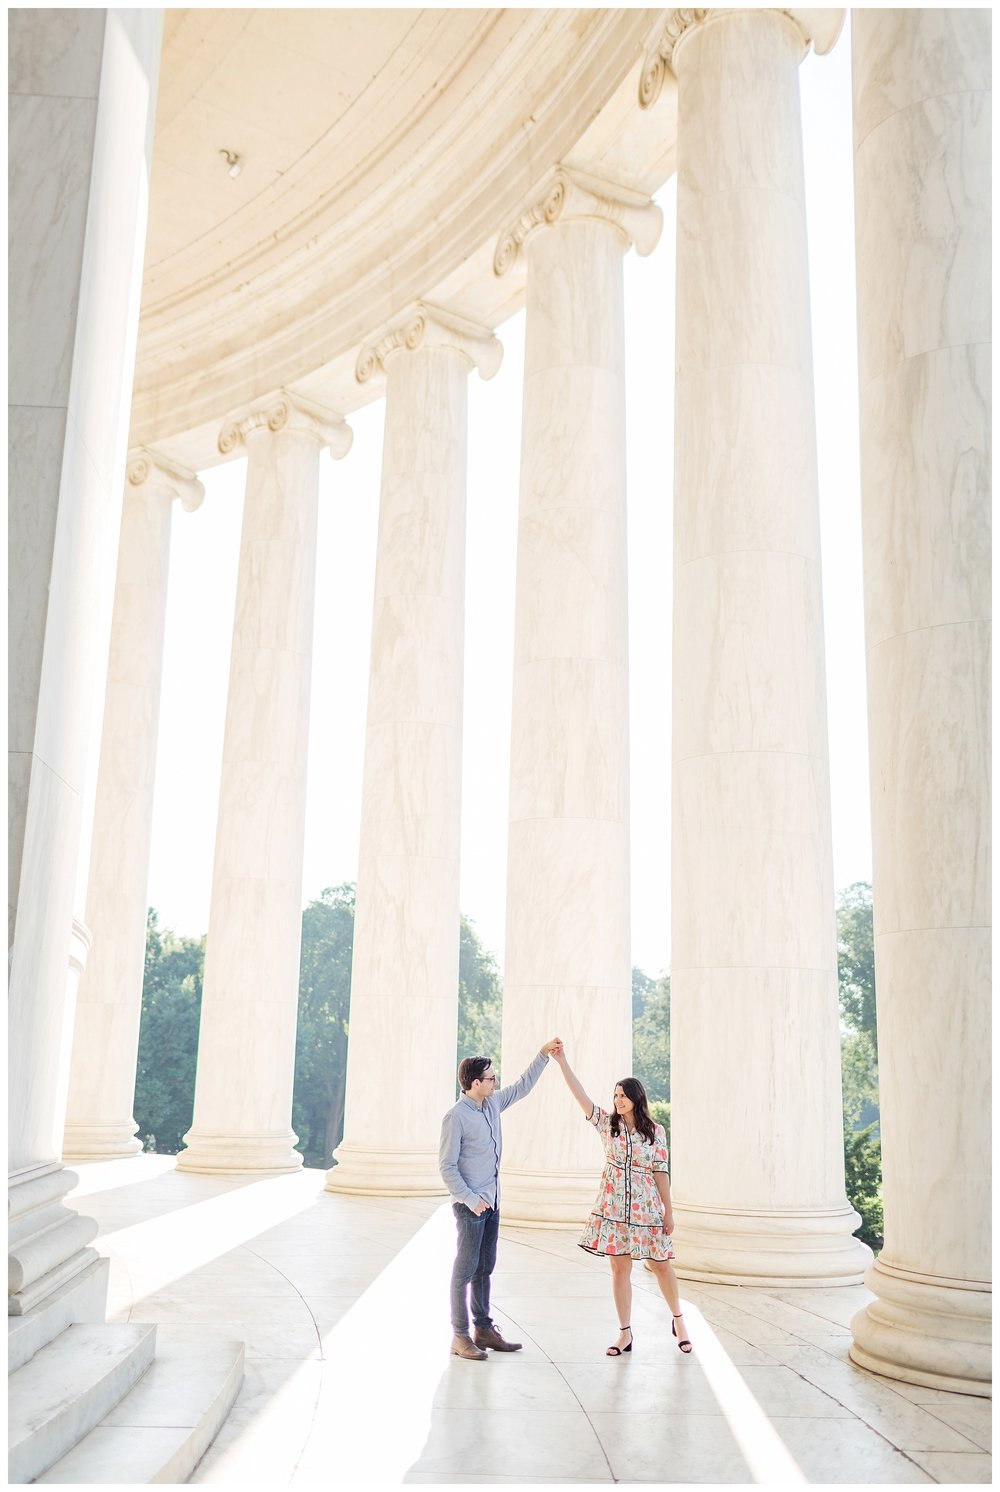 Capitol Hill Engagement Photos DC Wedding Photographer Kir Tuben_0030.jpg